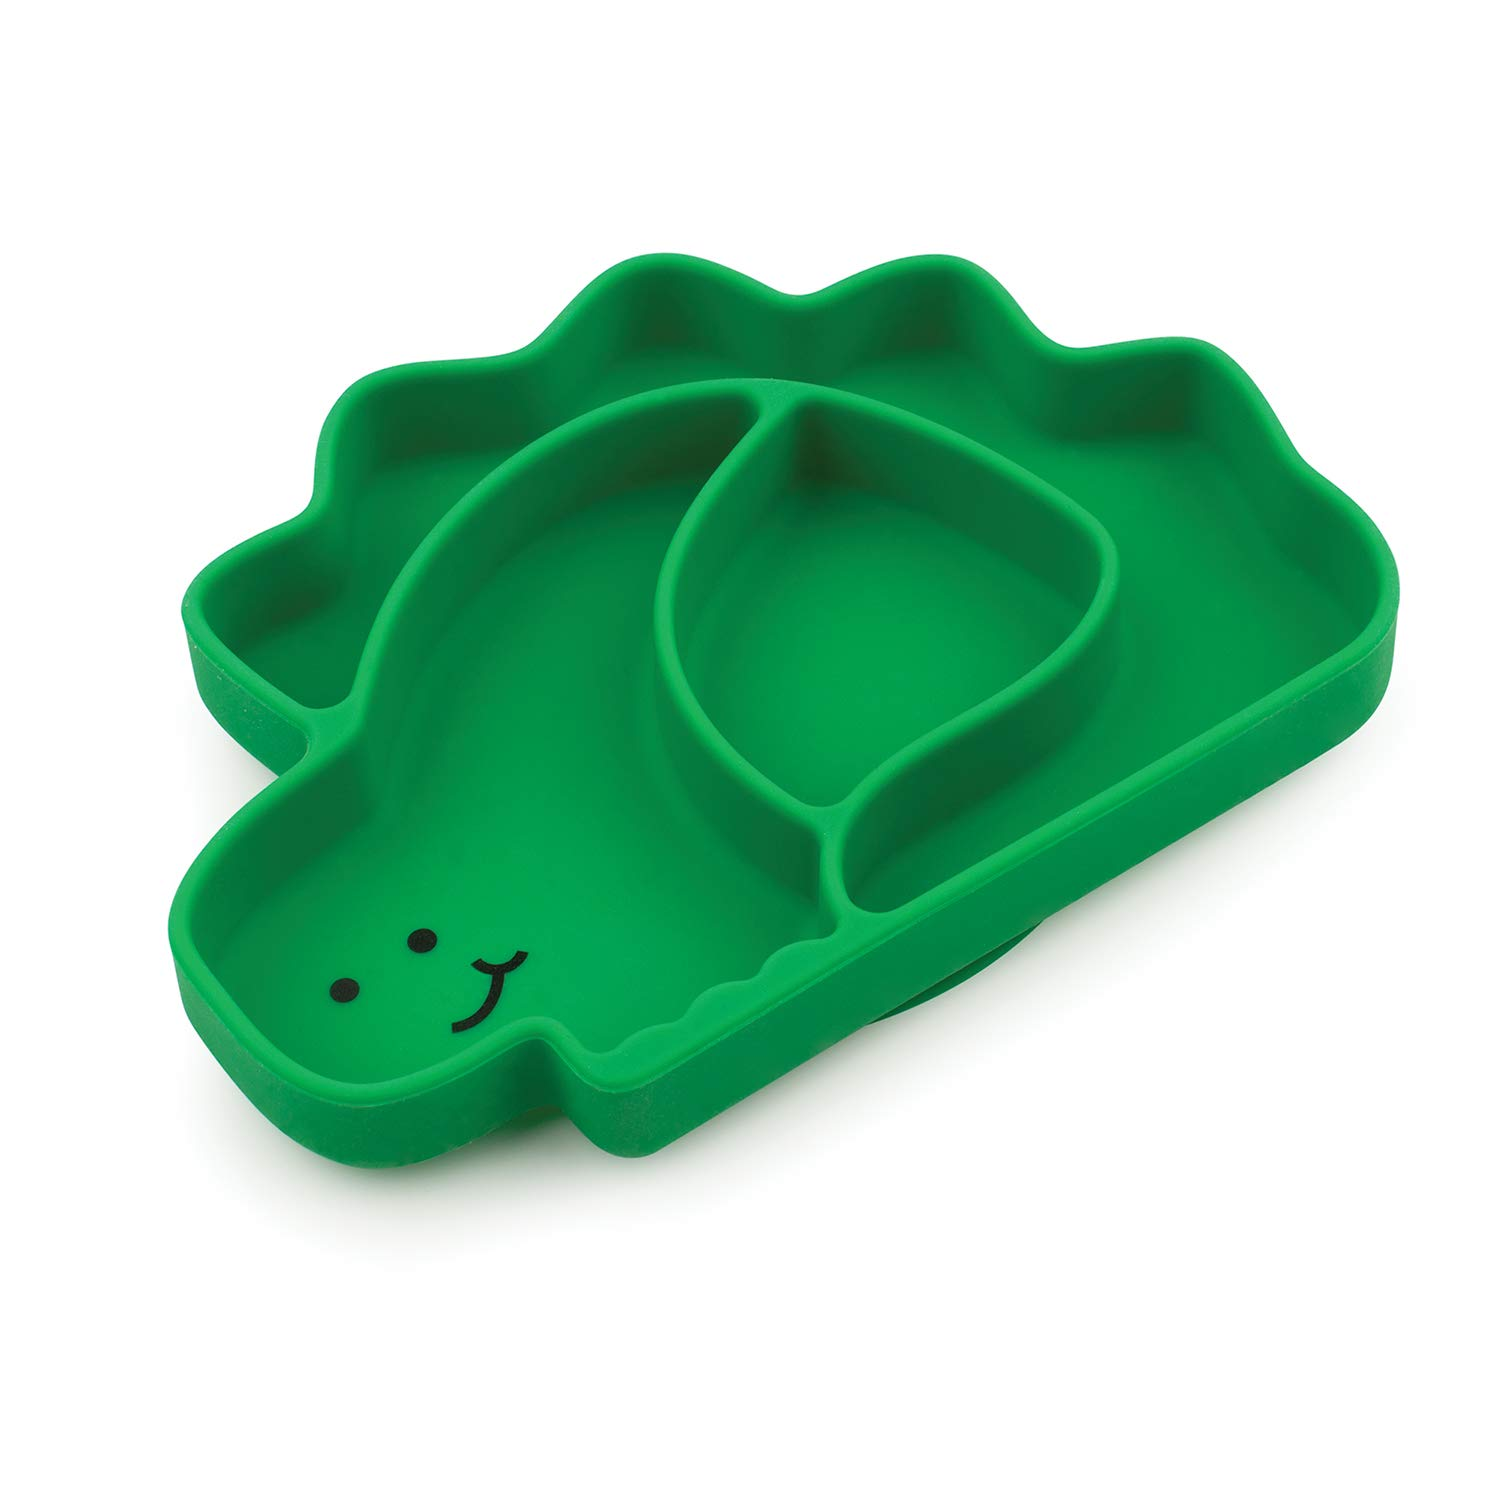 Bumkins Silicone Grip Dish, Suction Plate, Divided Plate, Baby Toddler Plate, BPA Free, Microwave Dishwasher Safe – Dinosaur